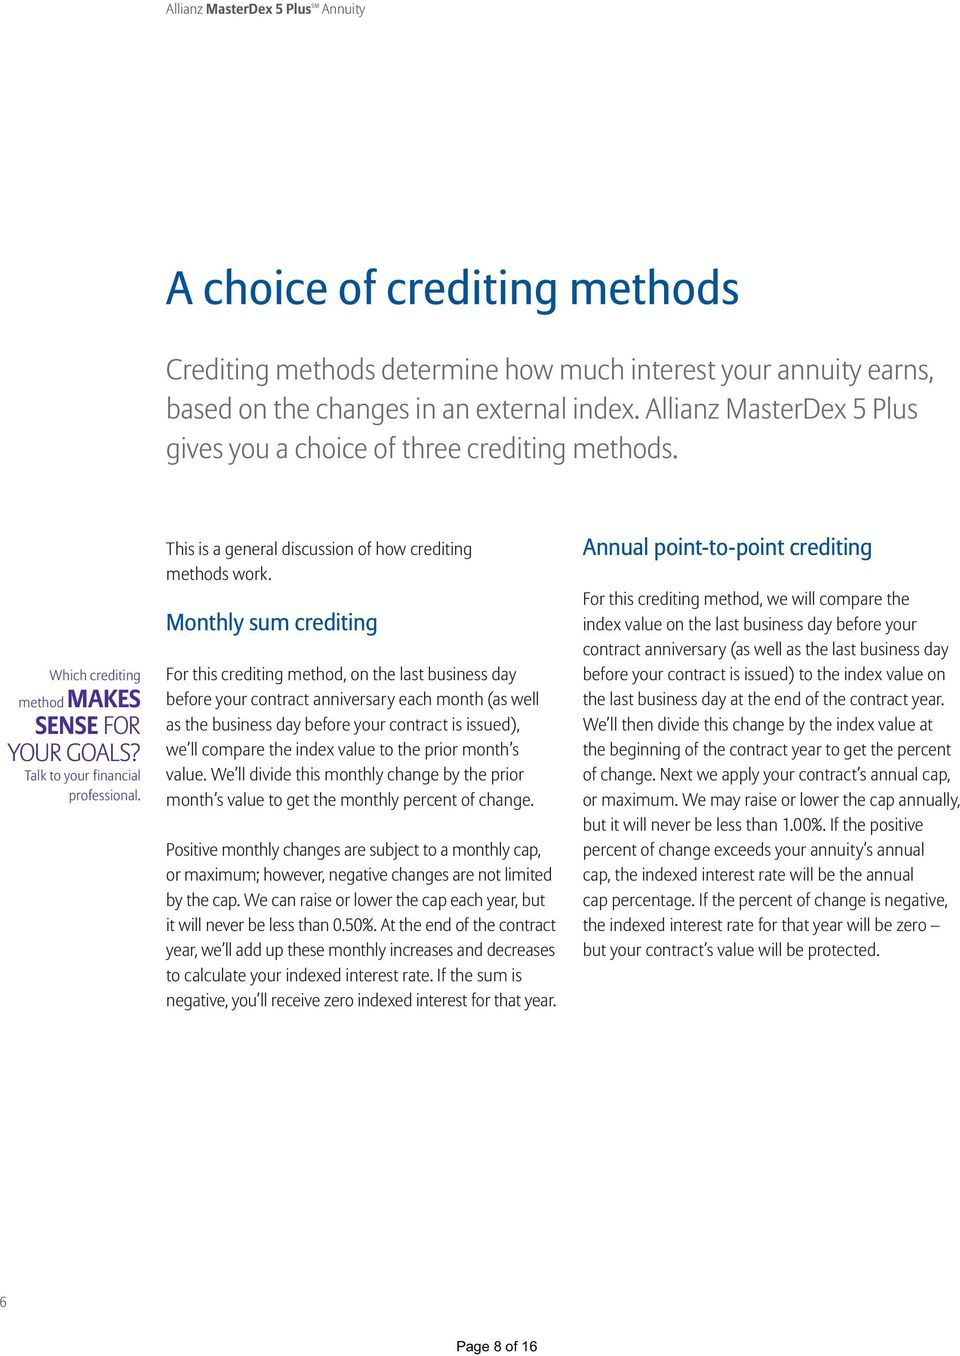 This is a general discussion of how crediting methods work.